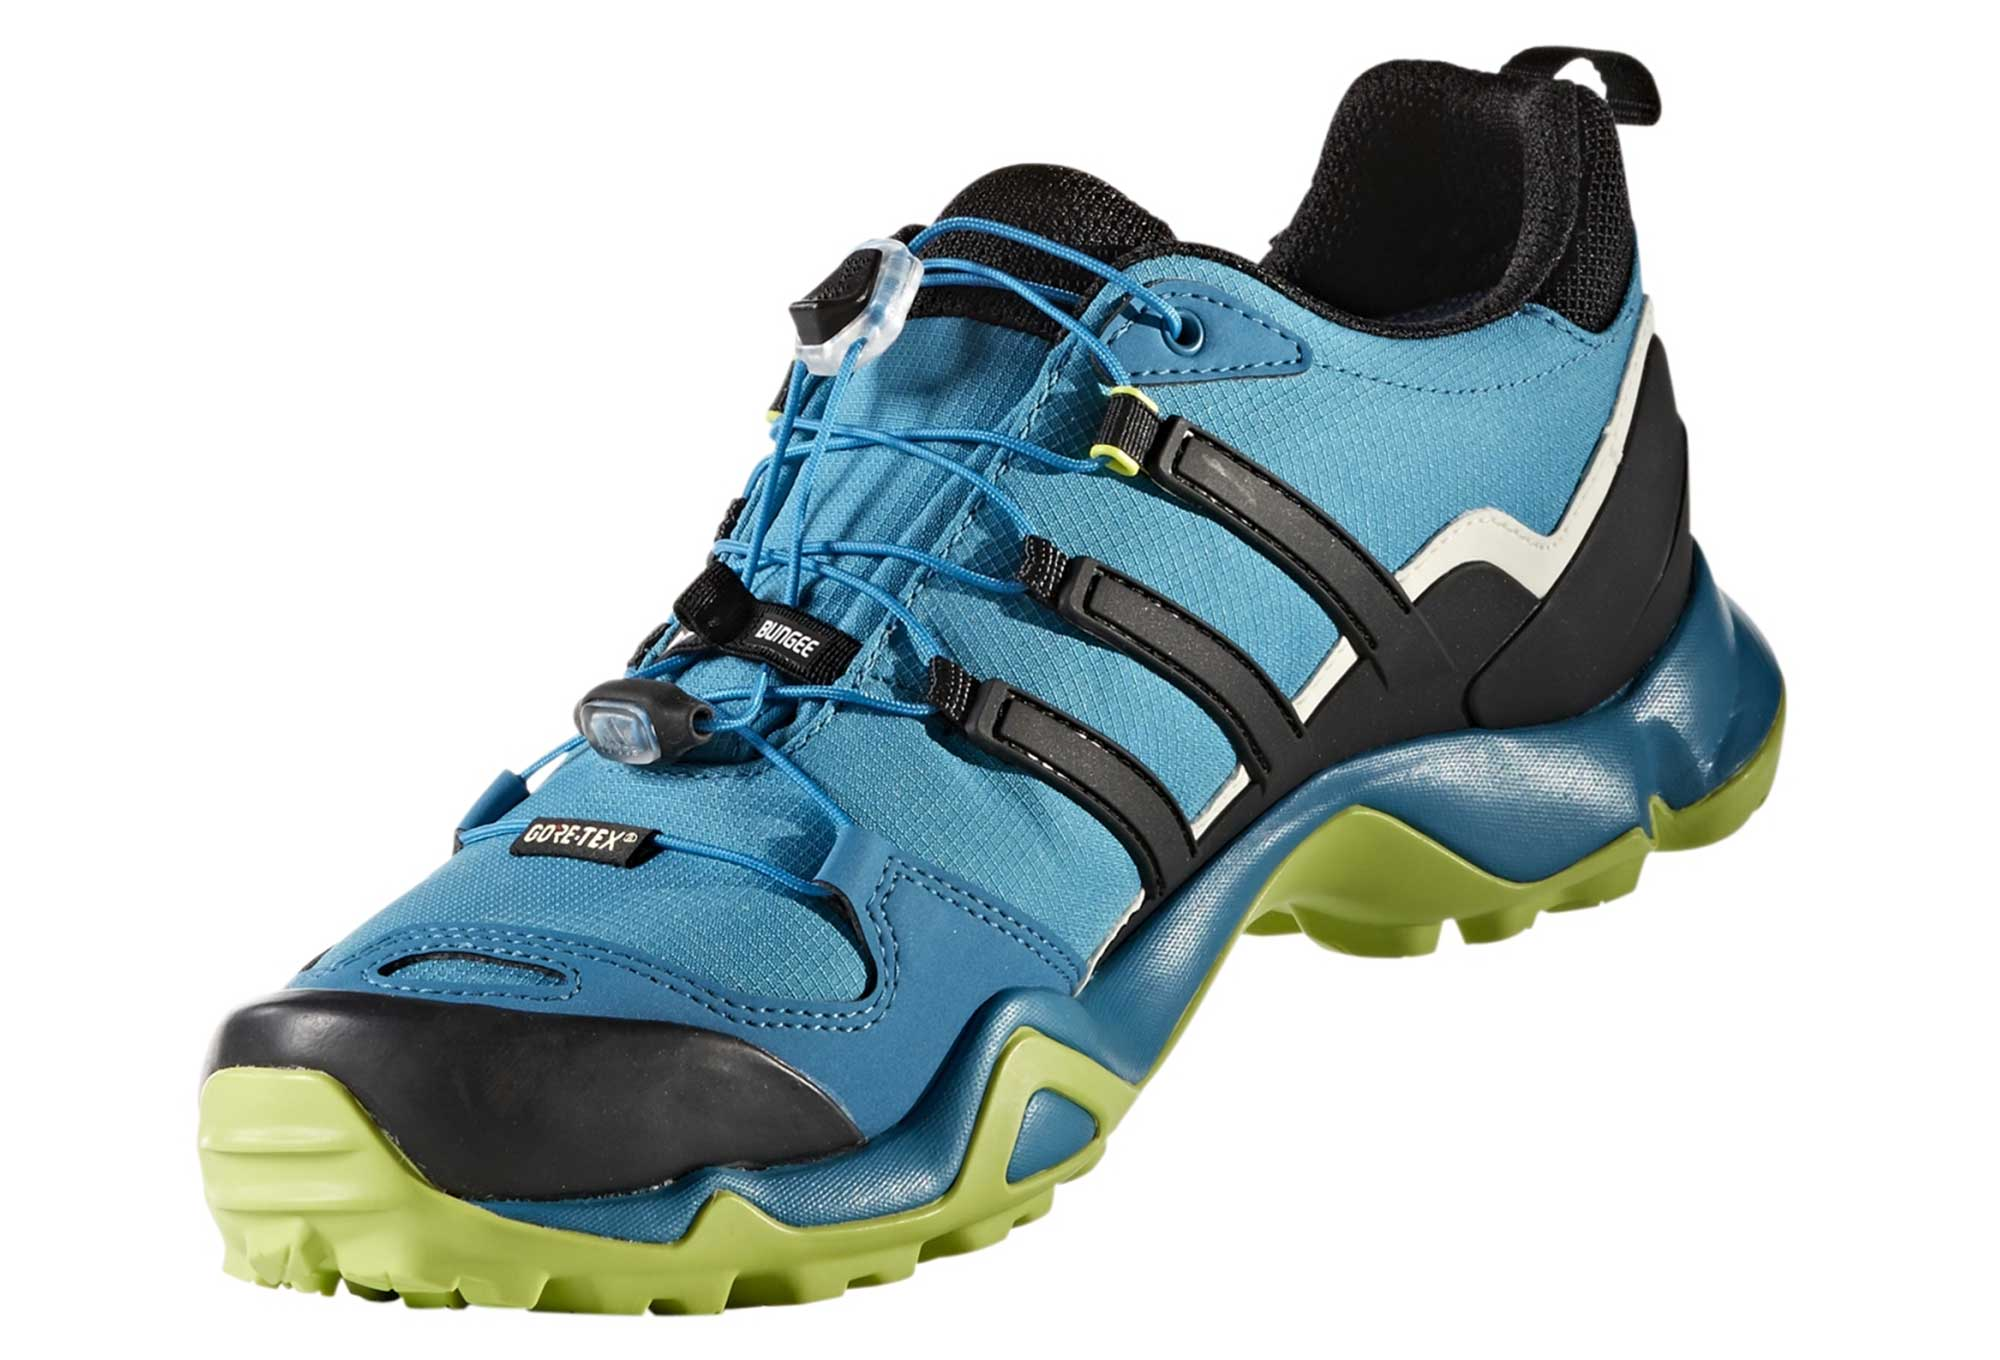 ca6b75689c9e1 adidas running Terrex Swift R GTX Blue Yellow Men